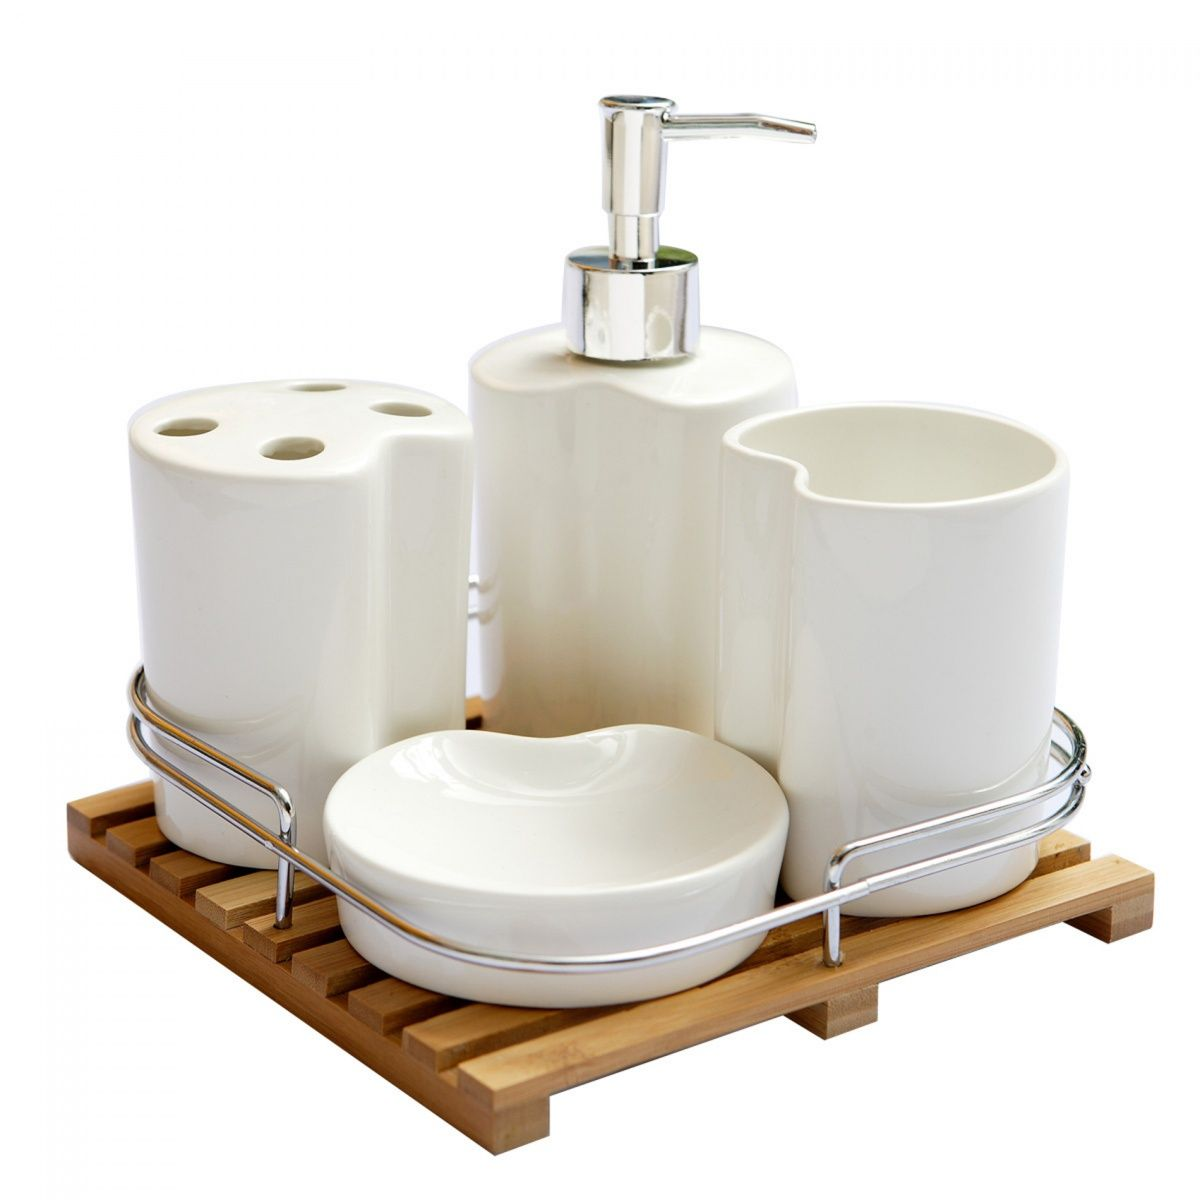 Bamboo bathroom accessories set bamboo tray accessories white ...